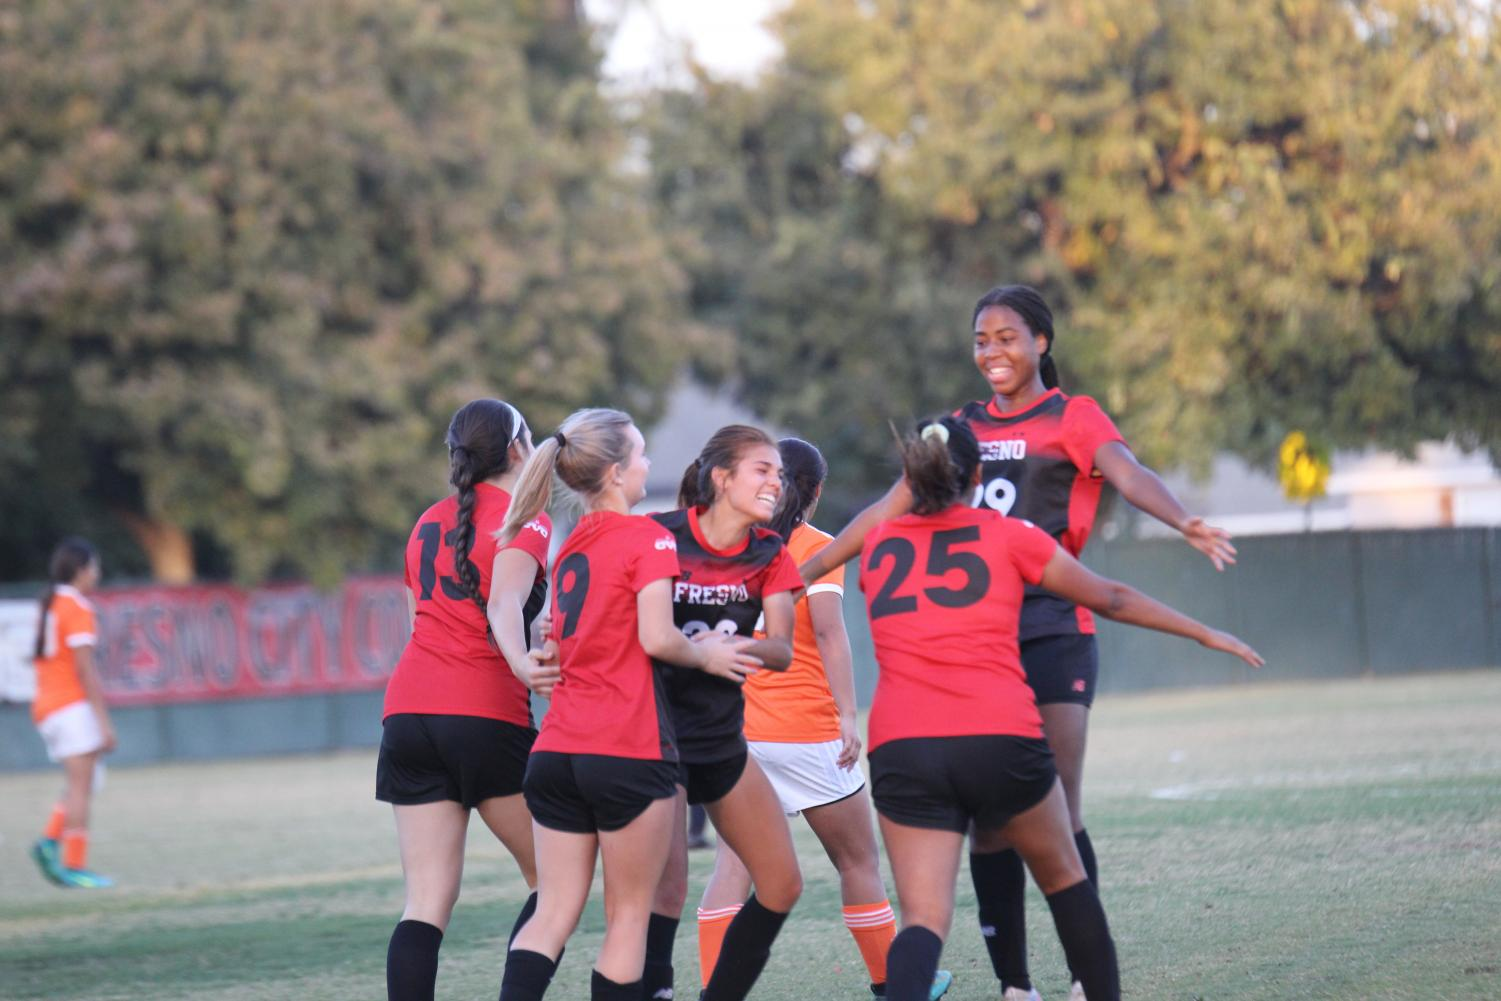 The Rams celebrate a goal during their 4-2 win over conference rival Reedley College during their match on Tuesday, Nov. 5, 2019